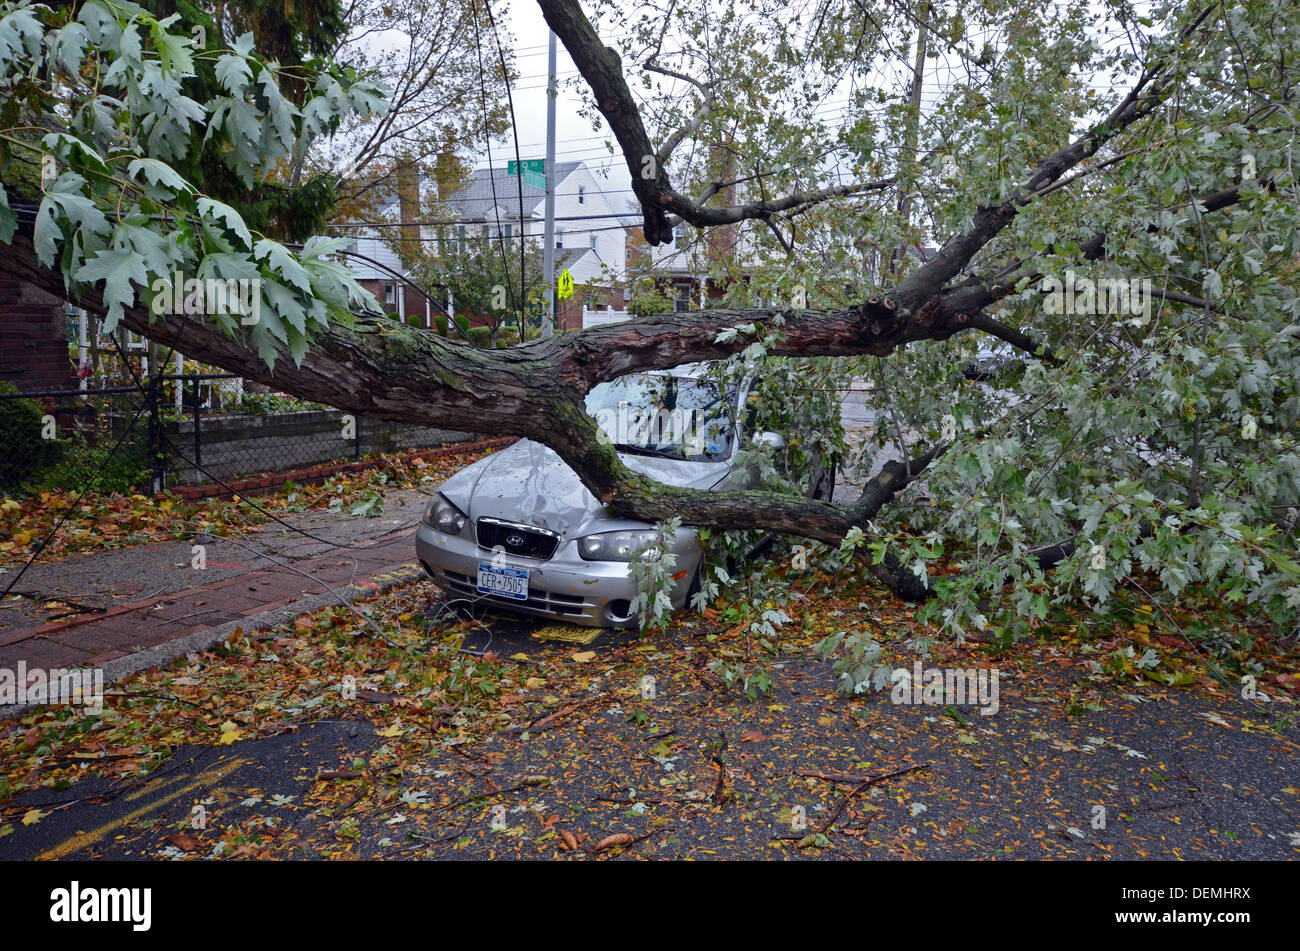 A tree that fell on a car and crushed it during Hurricane Sandy. In Flushing, Queens, New York - Stock Image